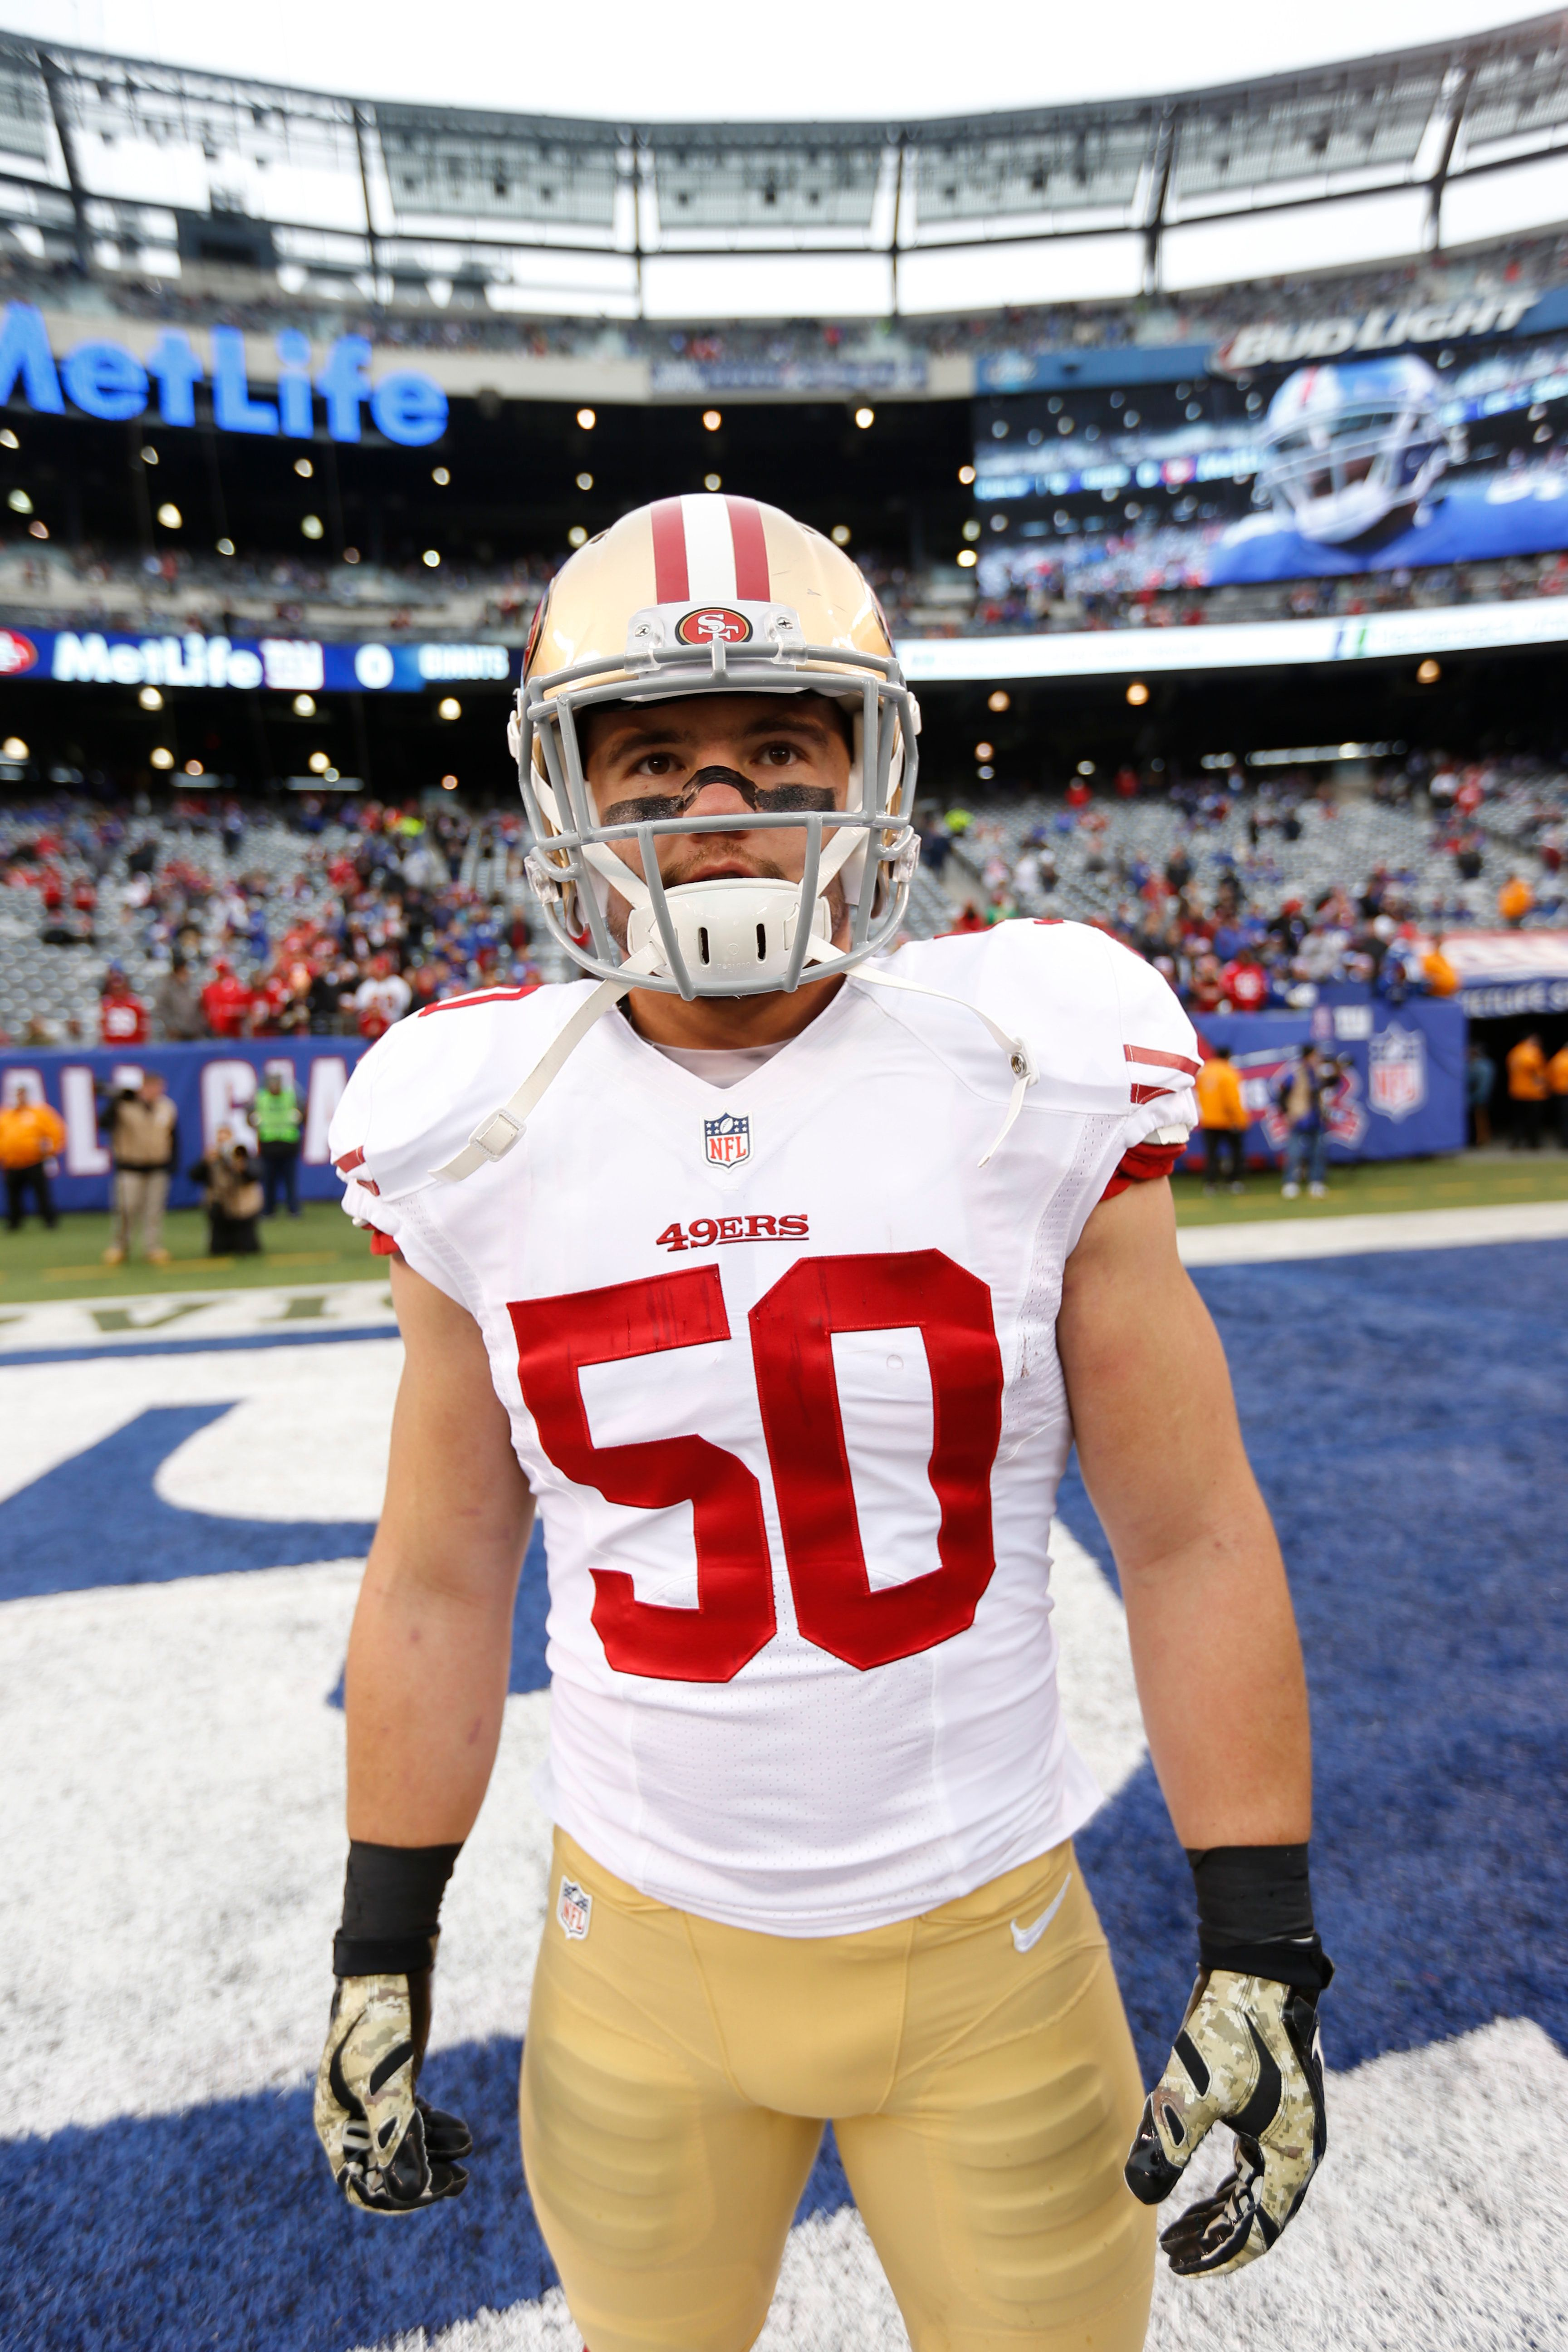 EAST RUTHERFORD, NJ - NOVEMBER 16: Chris Borland #50 of the San Francisco 49ers stands on the field prior to the game against the New York Giants at Metlife Stadium on November 16, 2014 in East Rutherford, New Jersey. The 49ers defeated the Giants 16-10. (Photo by Michael Zagaris/San Francisco 49ers/Getty Images)